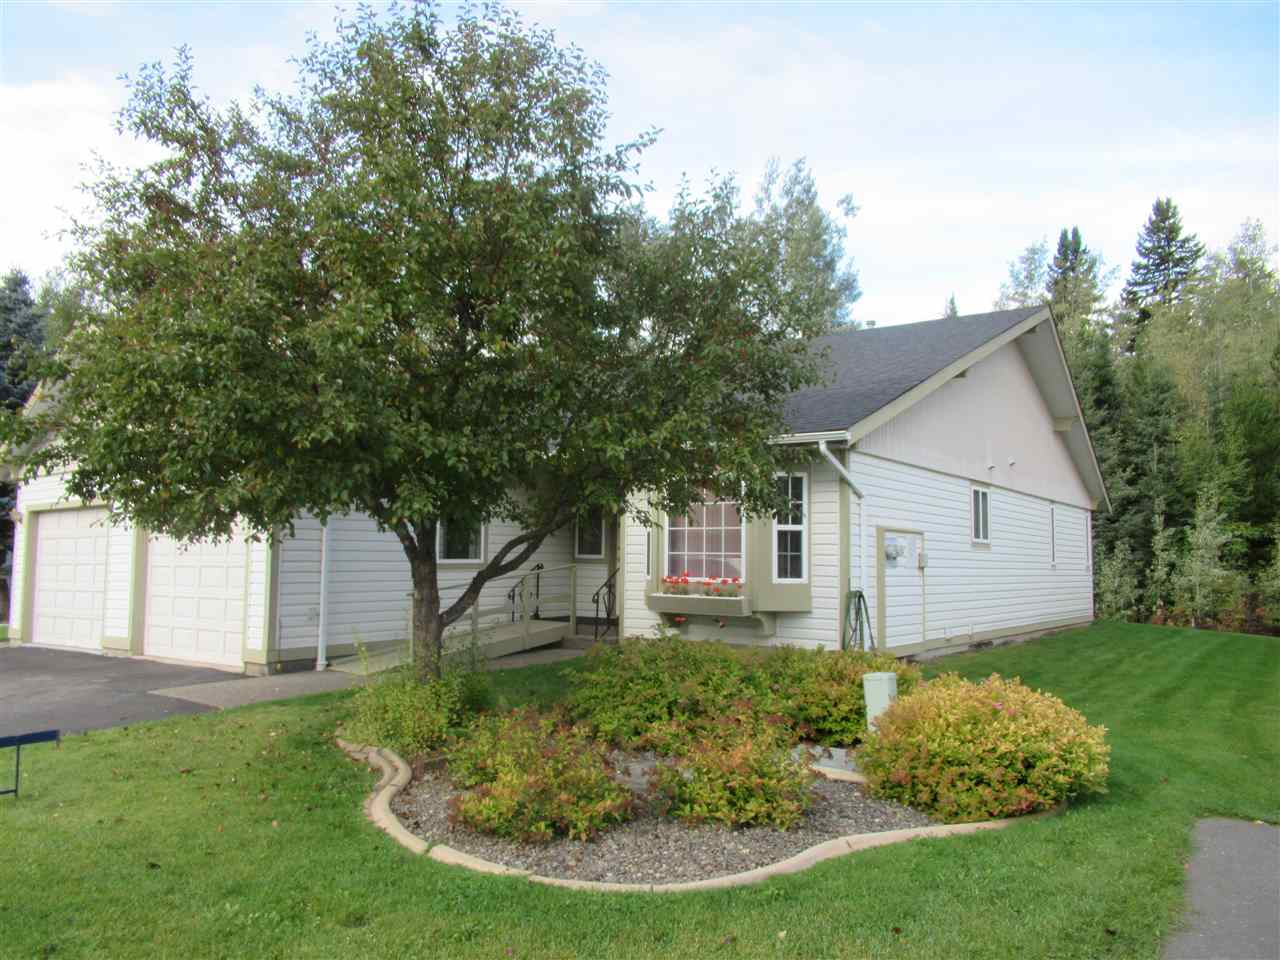 24 1205 MONTREAL STREET, Smithers, BC, V0J 2N0 (262426536)